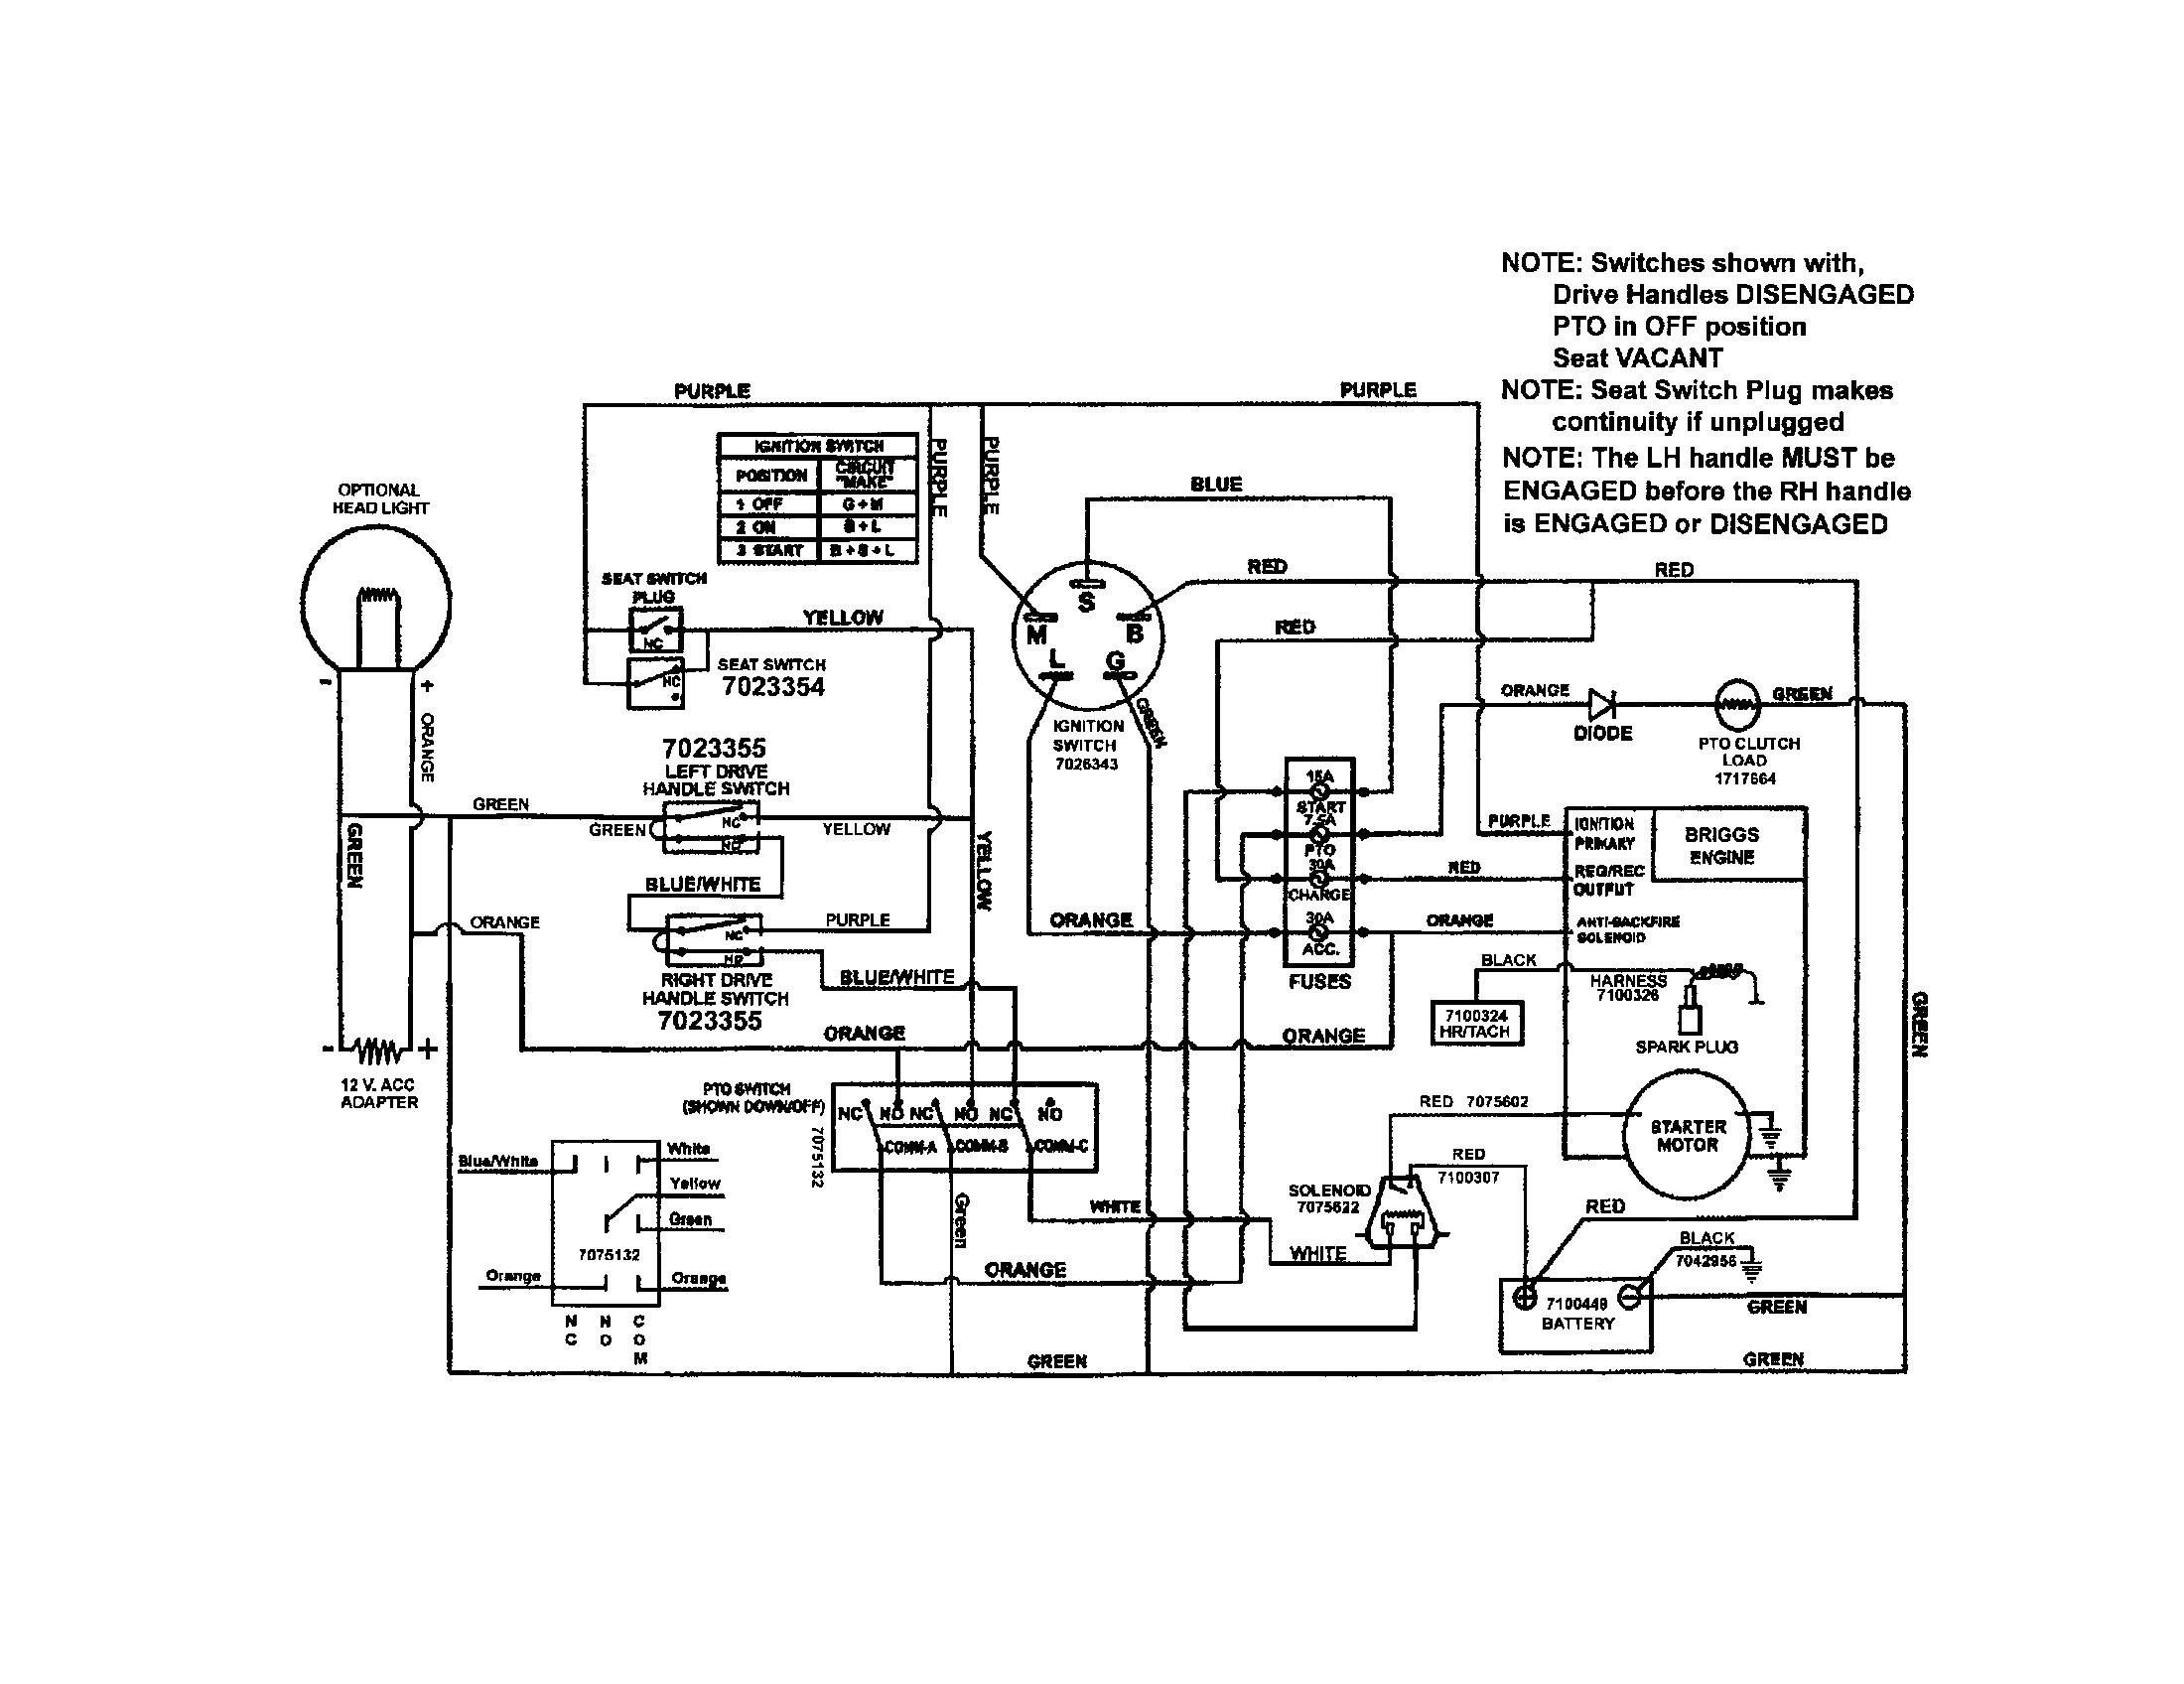 17 hp briggs stratton wiring diagram hecho 18 7 fearless wonder de u hp briggs